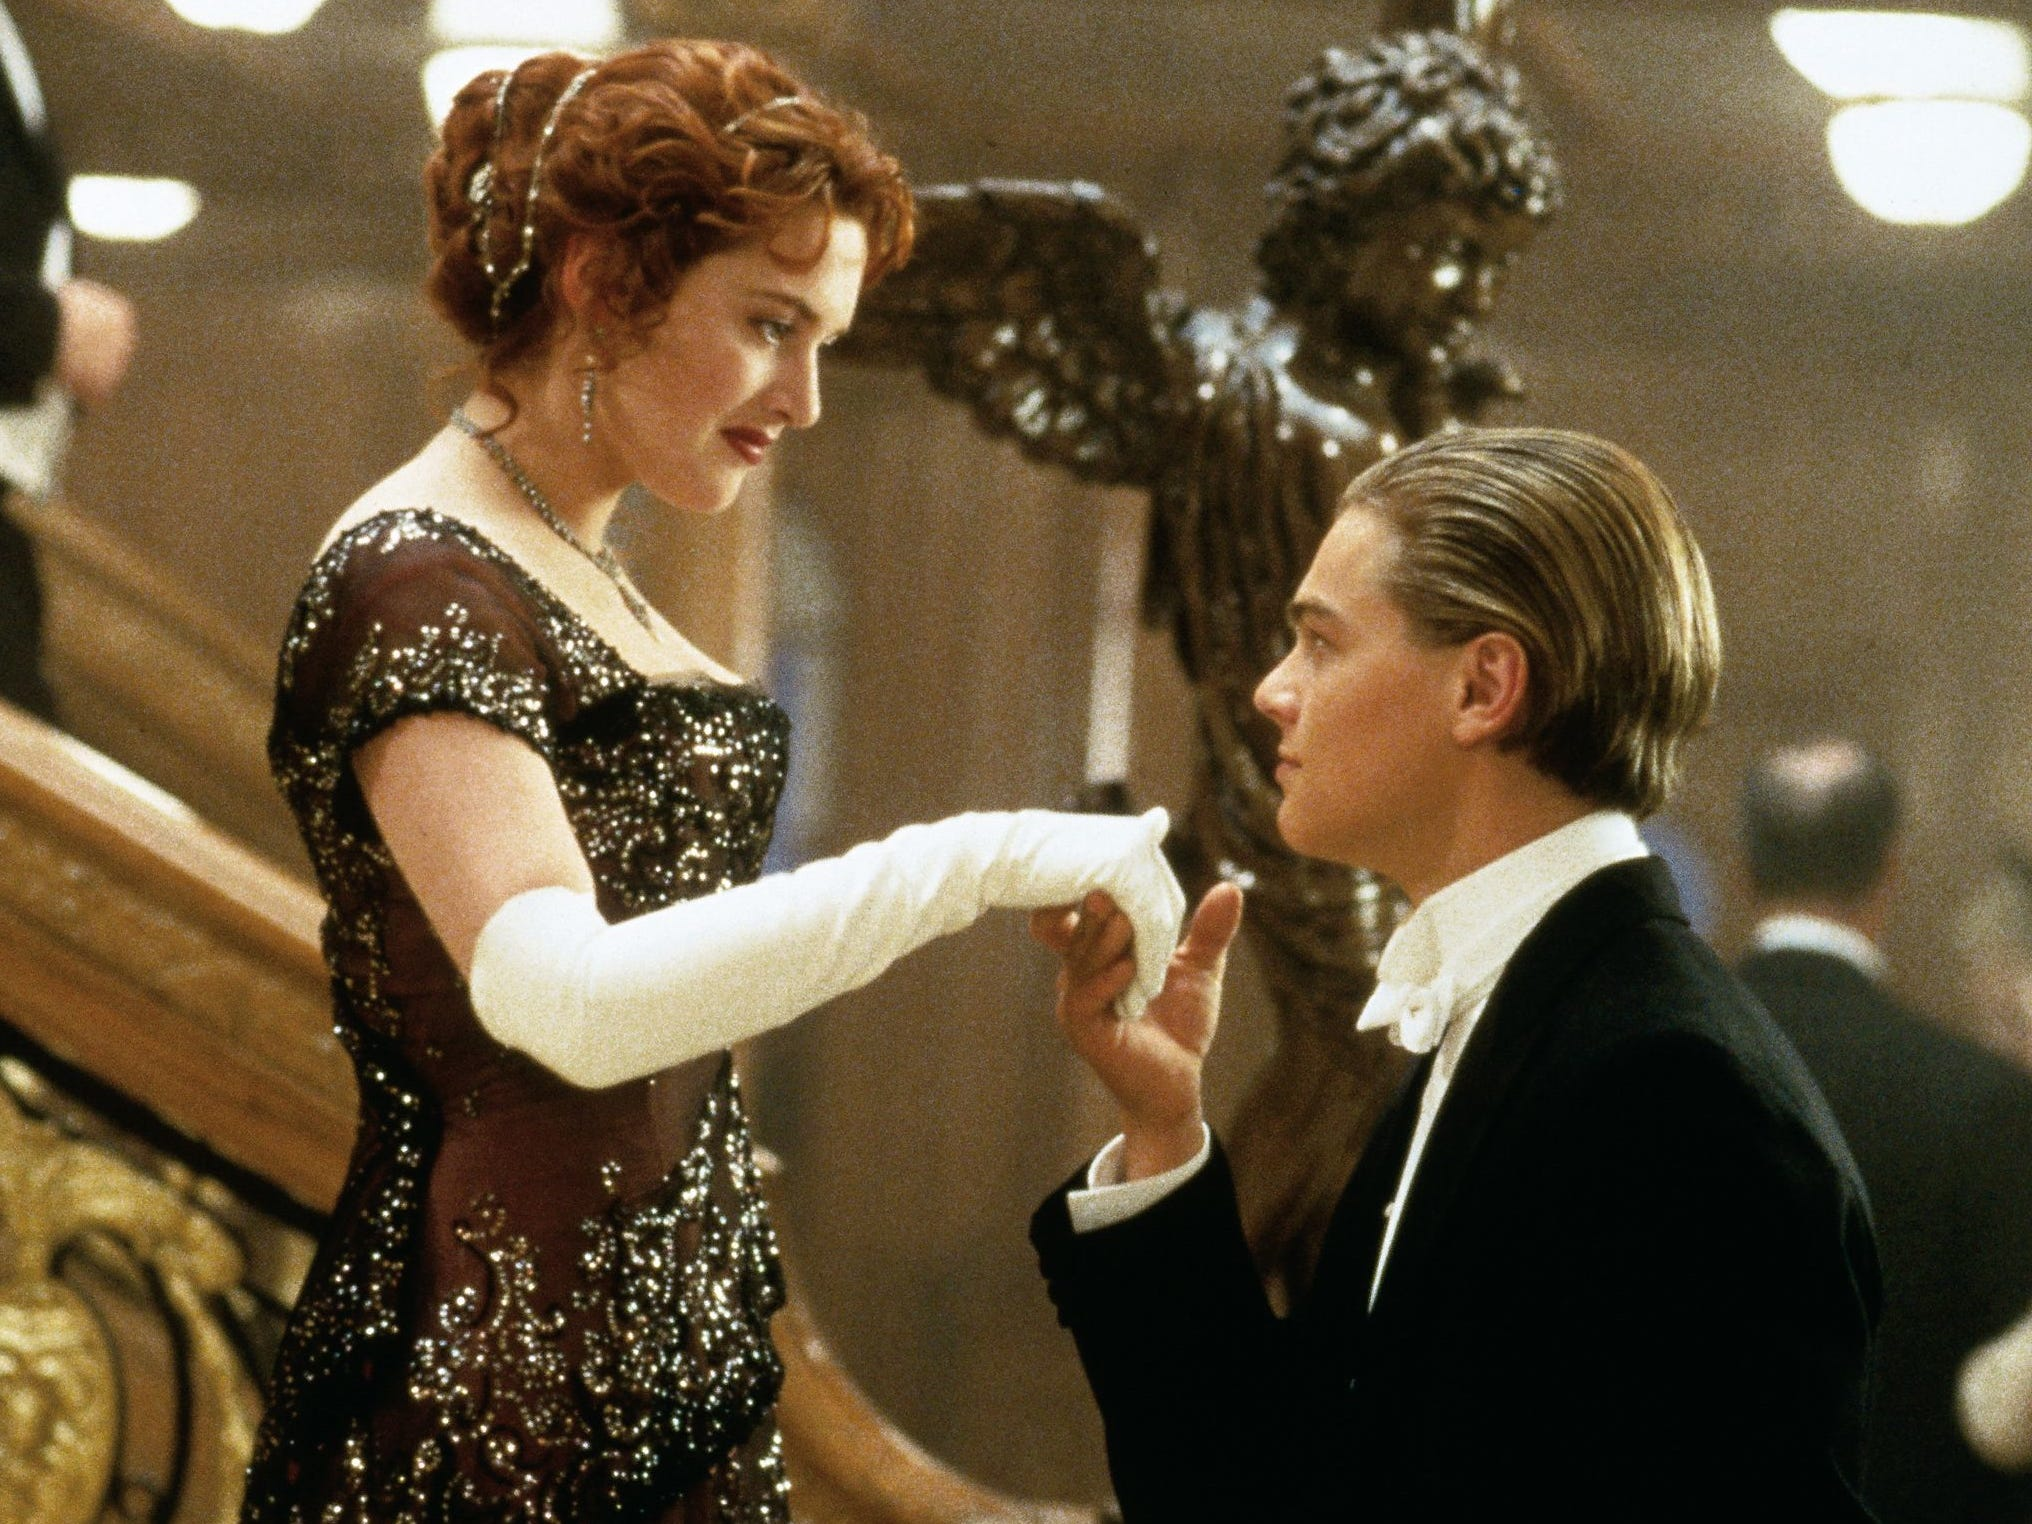 'Titanic': The most expensive movie in Hollywood history at the time of its 1997 release, 'Titanic' holds up as a feast for the eyes. The divine Kate Winslet and Leonardo DiCaprio help.